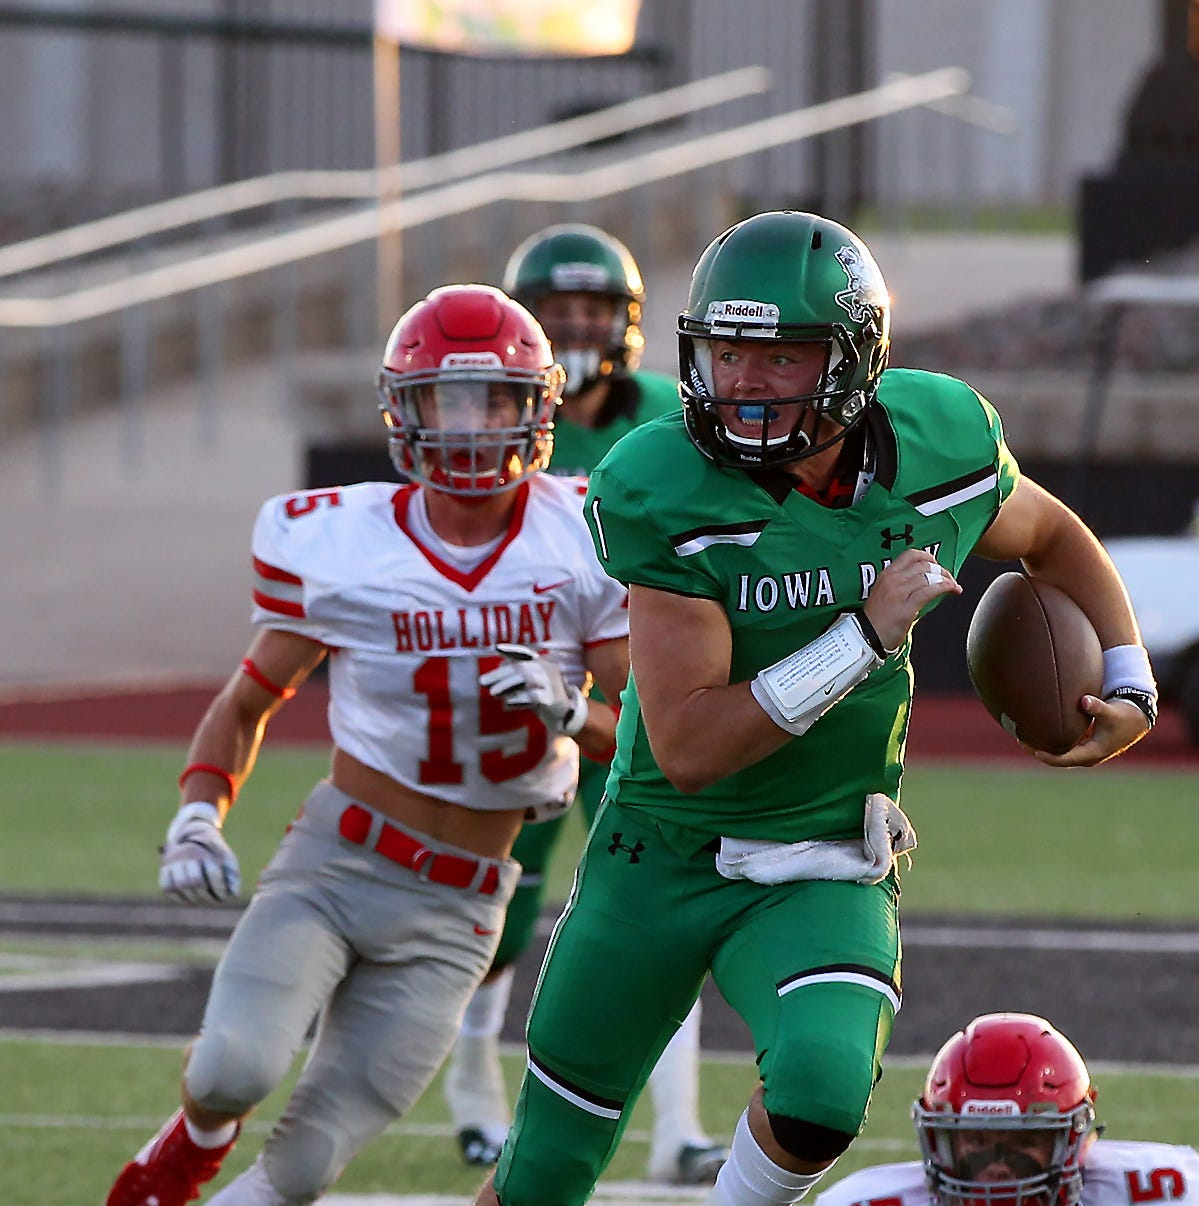 4A roundup: Cousins to battle at QB in Iowa Park-Mineral Wells matchup